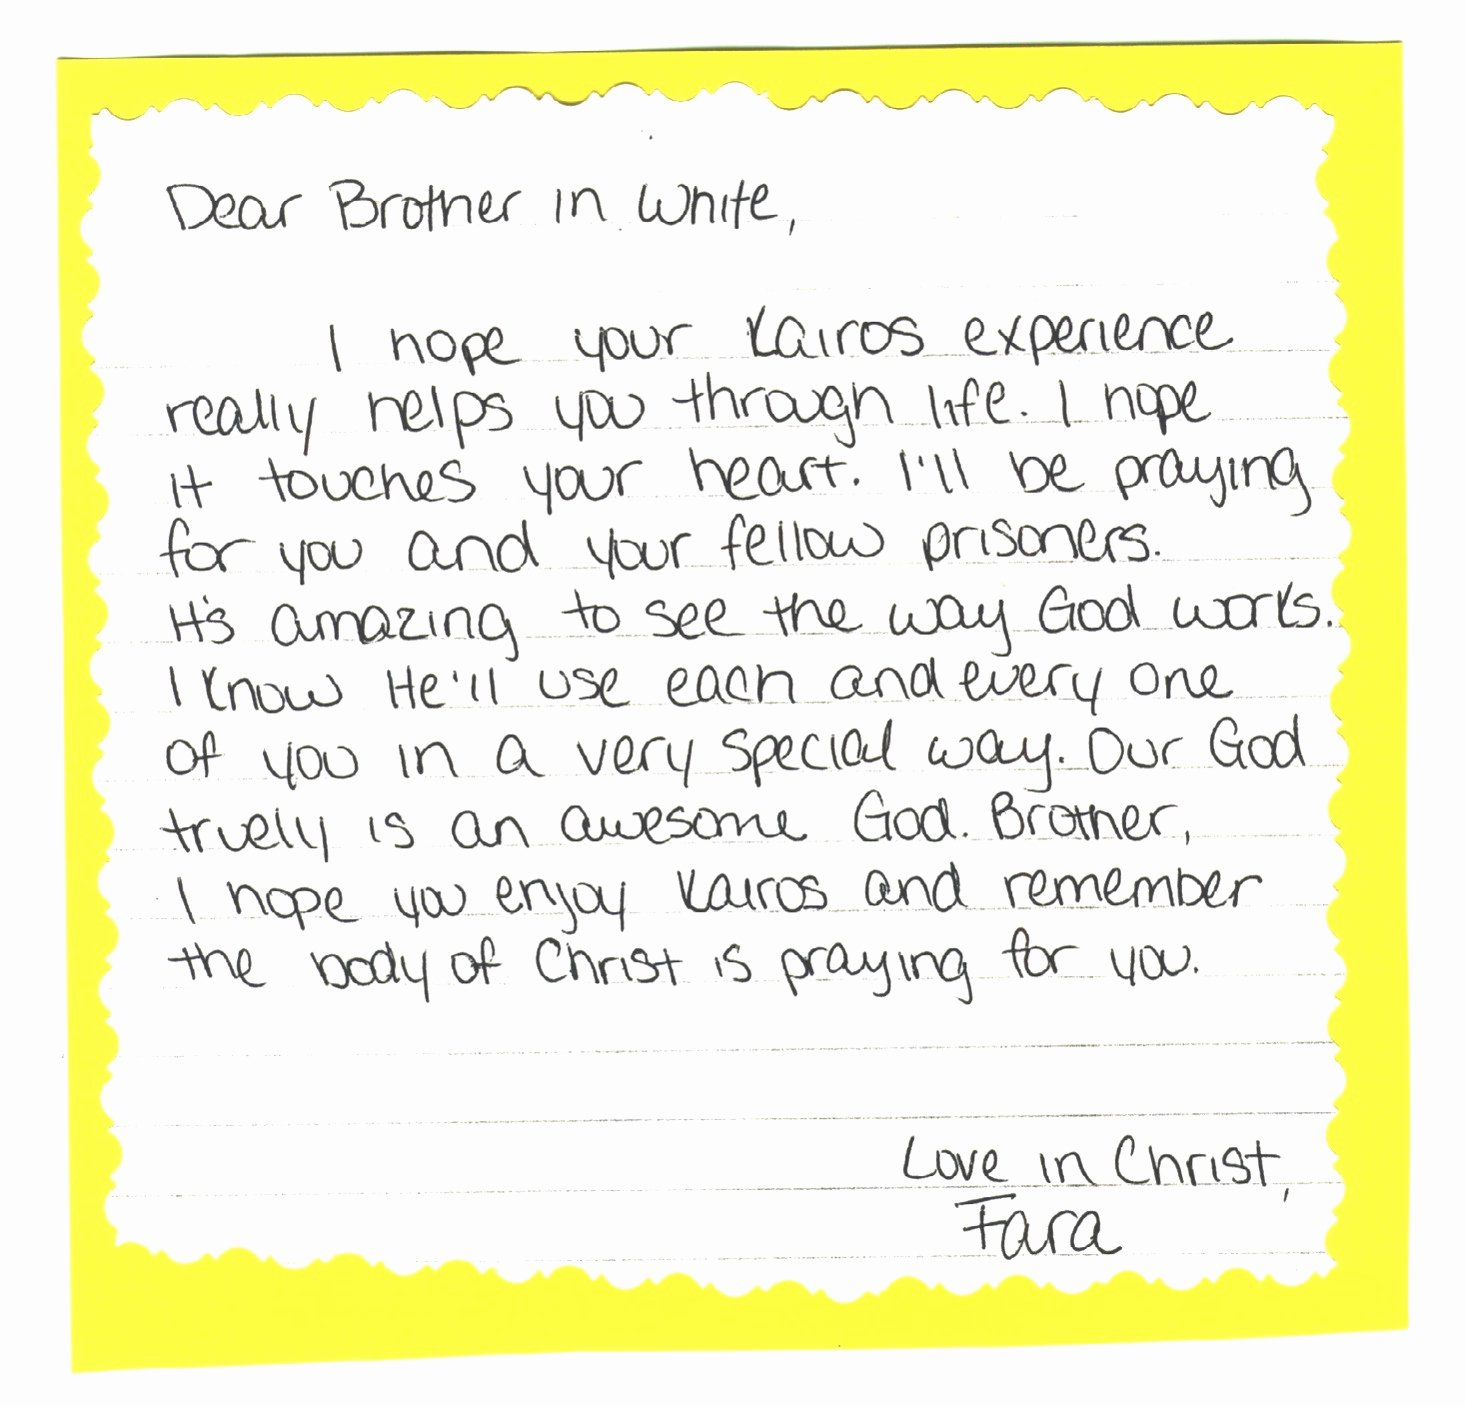 Kairos Letters From Parents Unique Support Letter for Inmate